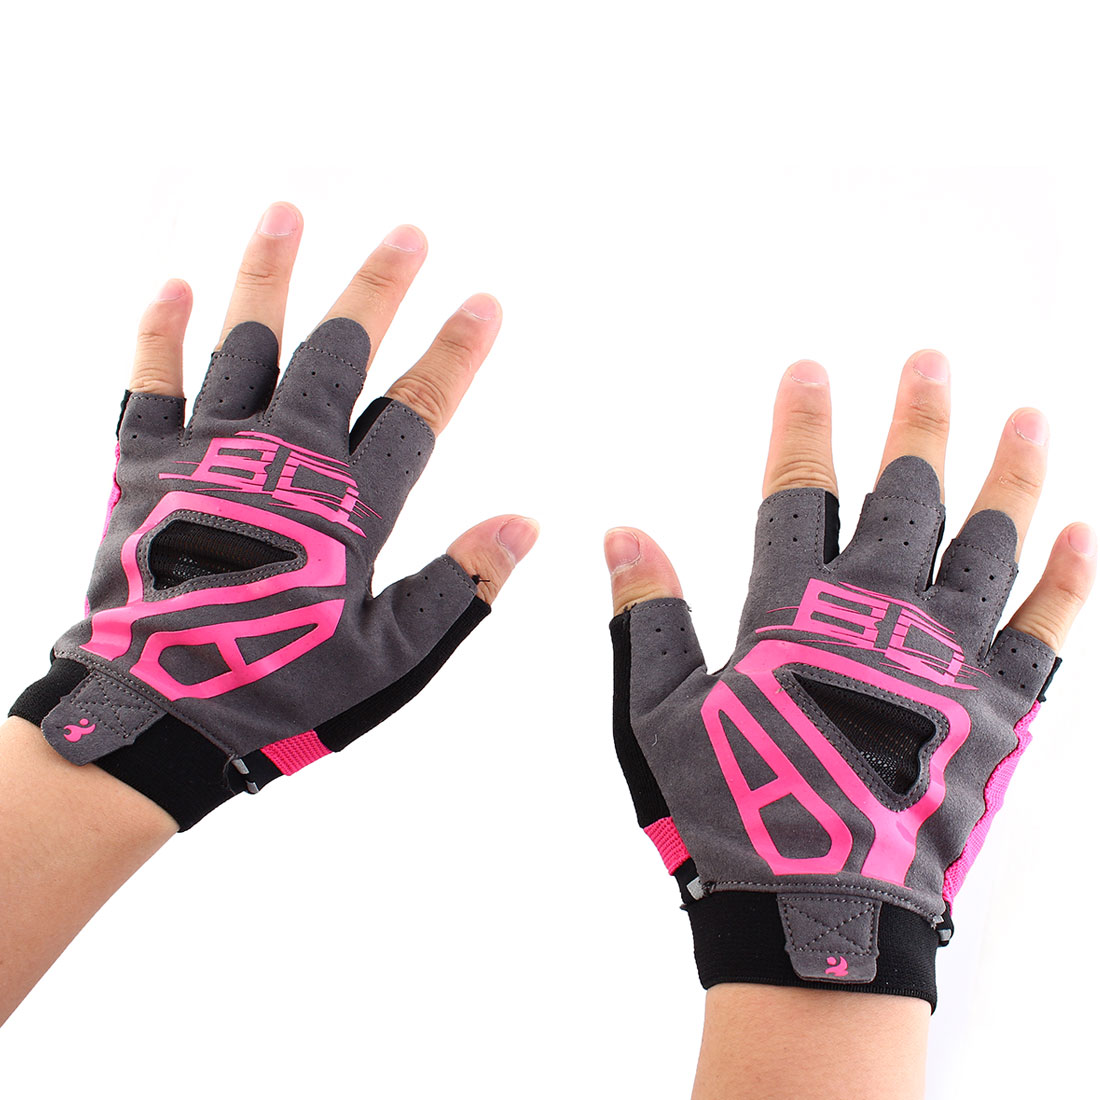 Boodun Authorized Outdoor Cycling Gym Workout Training Yoga Weight Lifting Half Finger Gloves Fuchsia Size M Pair